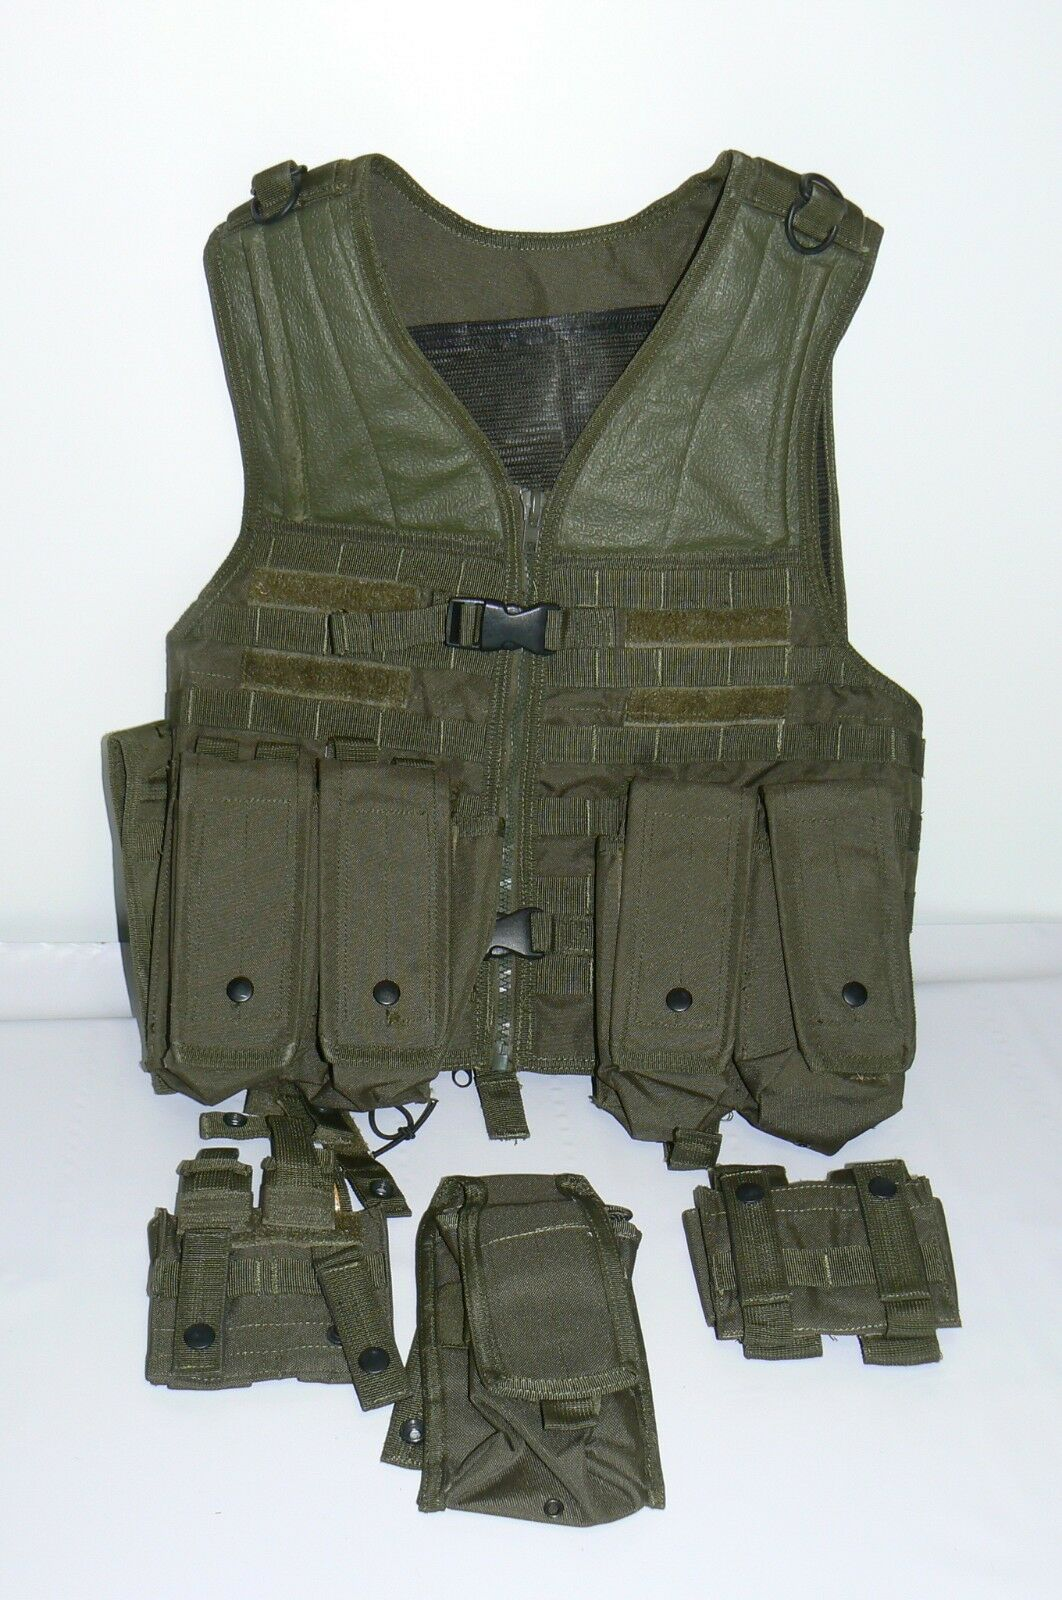 MIL SPEC Modular Tactical MOLLE VEST Military Combat Hunting  Army Airsoft extras  2018 latest